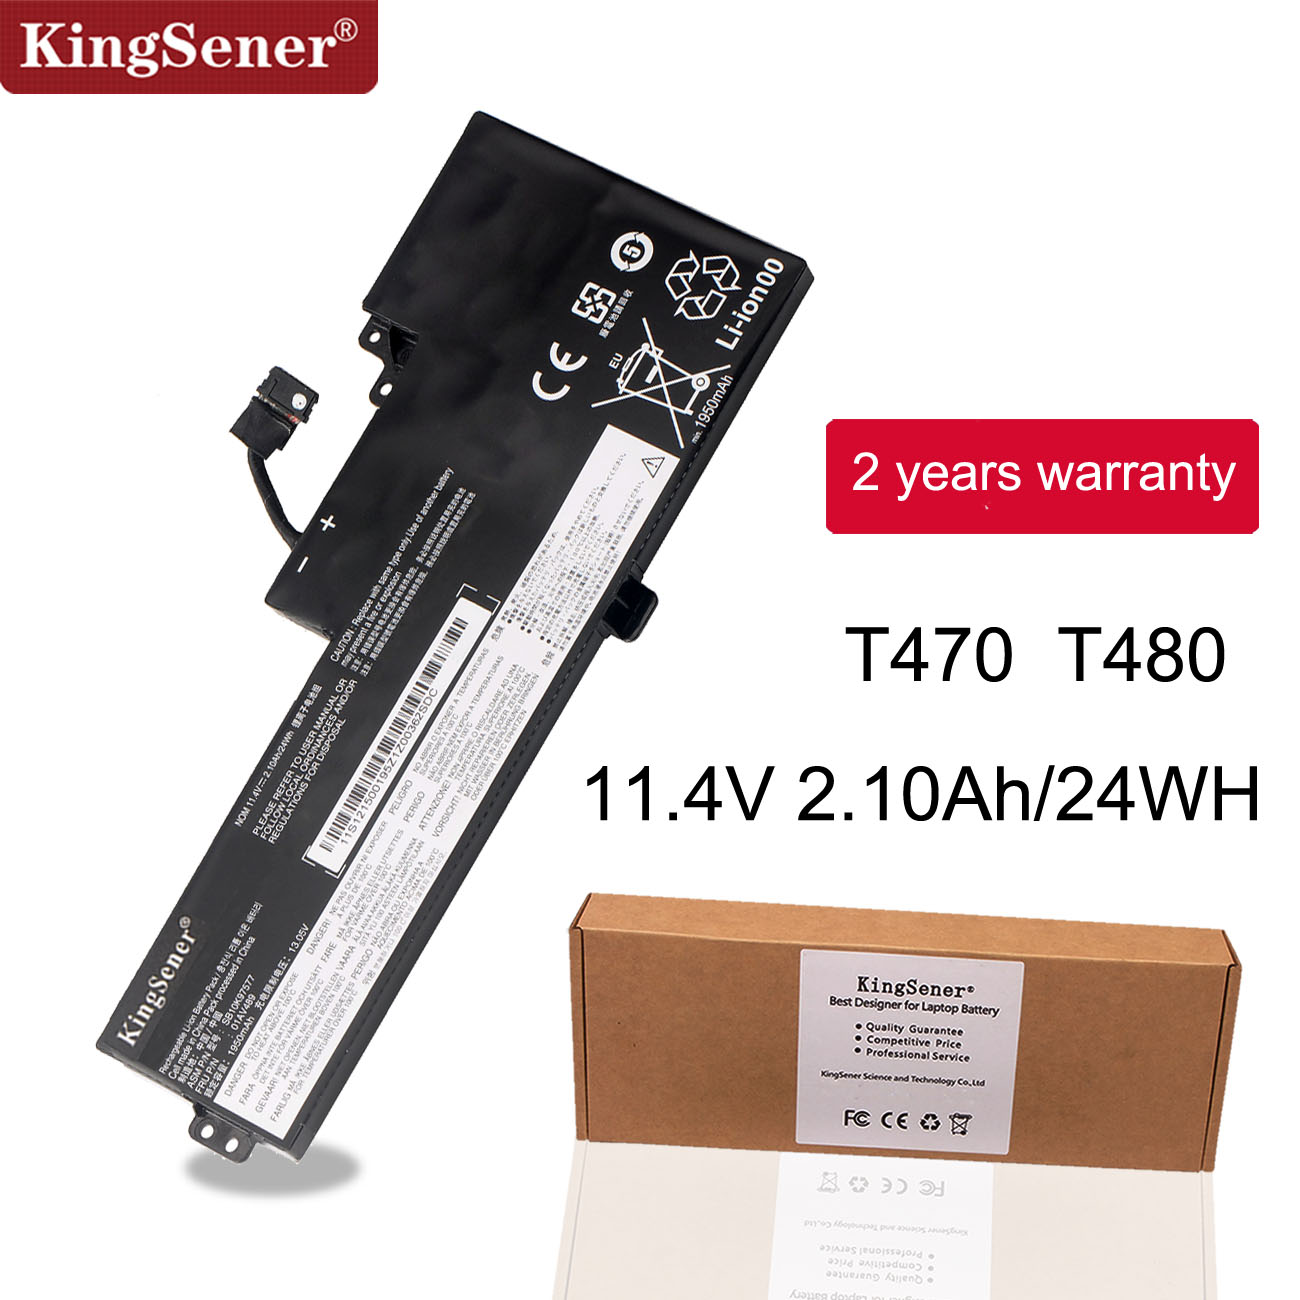 KingSener Laptop Battery For Lenovo ThinkPad T470 T480 A475 A285 Series 01AV419 01AV420 01AV421 01AV489 SB10K97576 SB10K97578